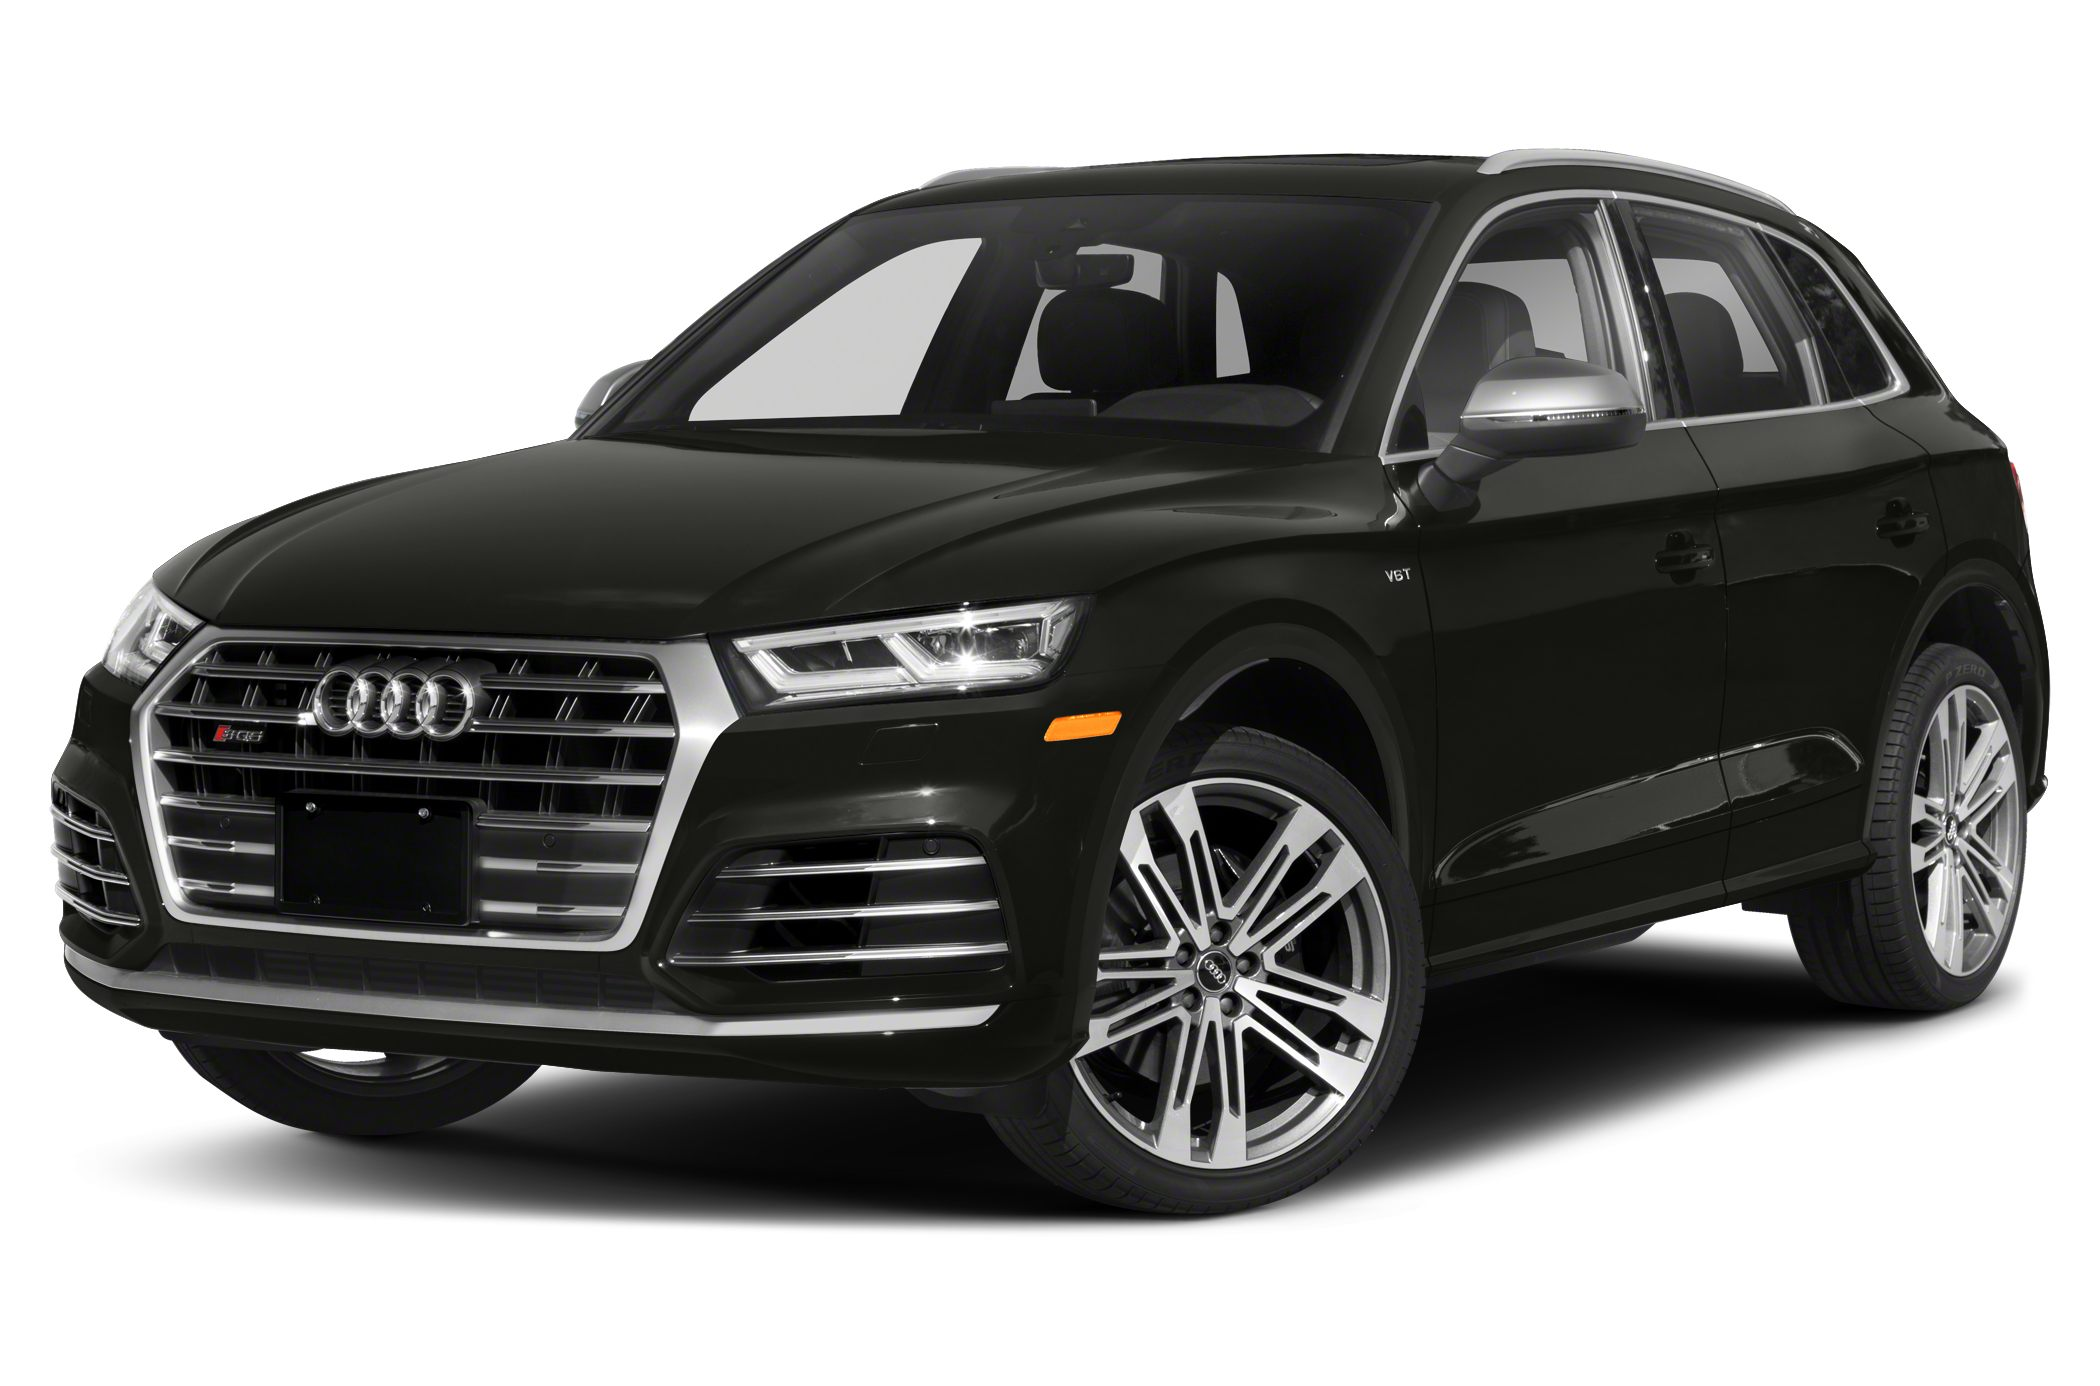 The 2018 Audi SQ5 looks mean and switches to turbo power - Autoblog